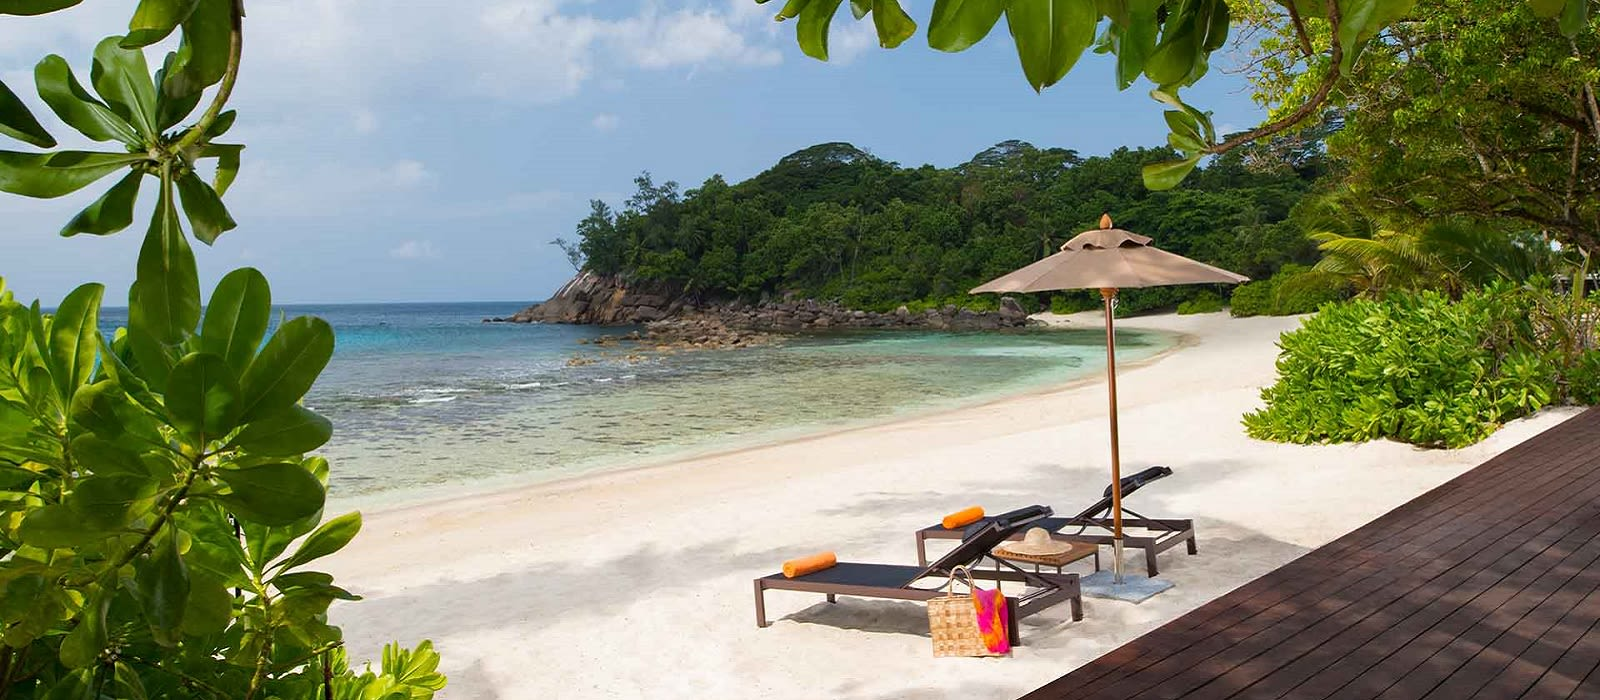 Seychelles Beach Holiday: Island Paradise Tour Trip 2